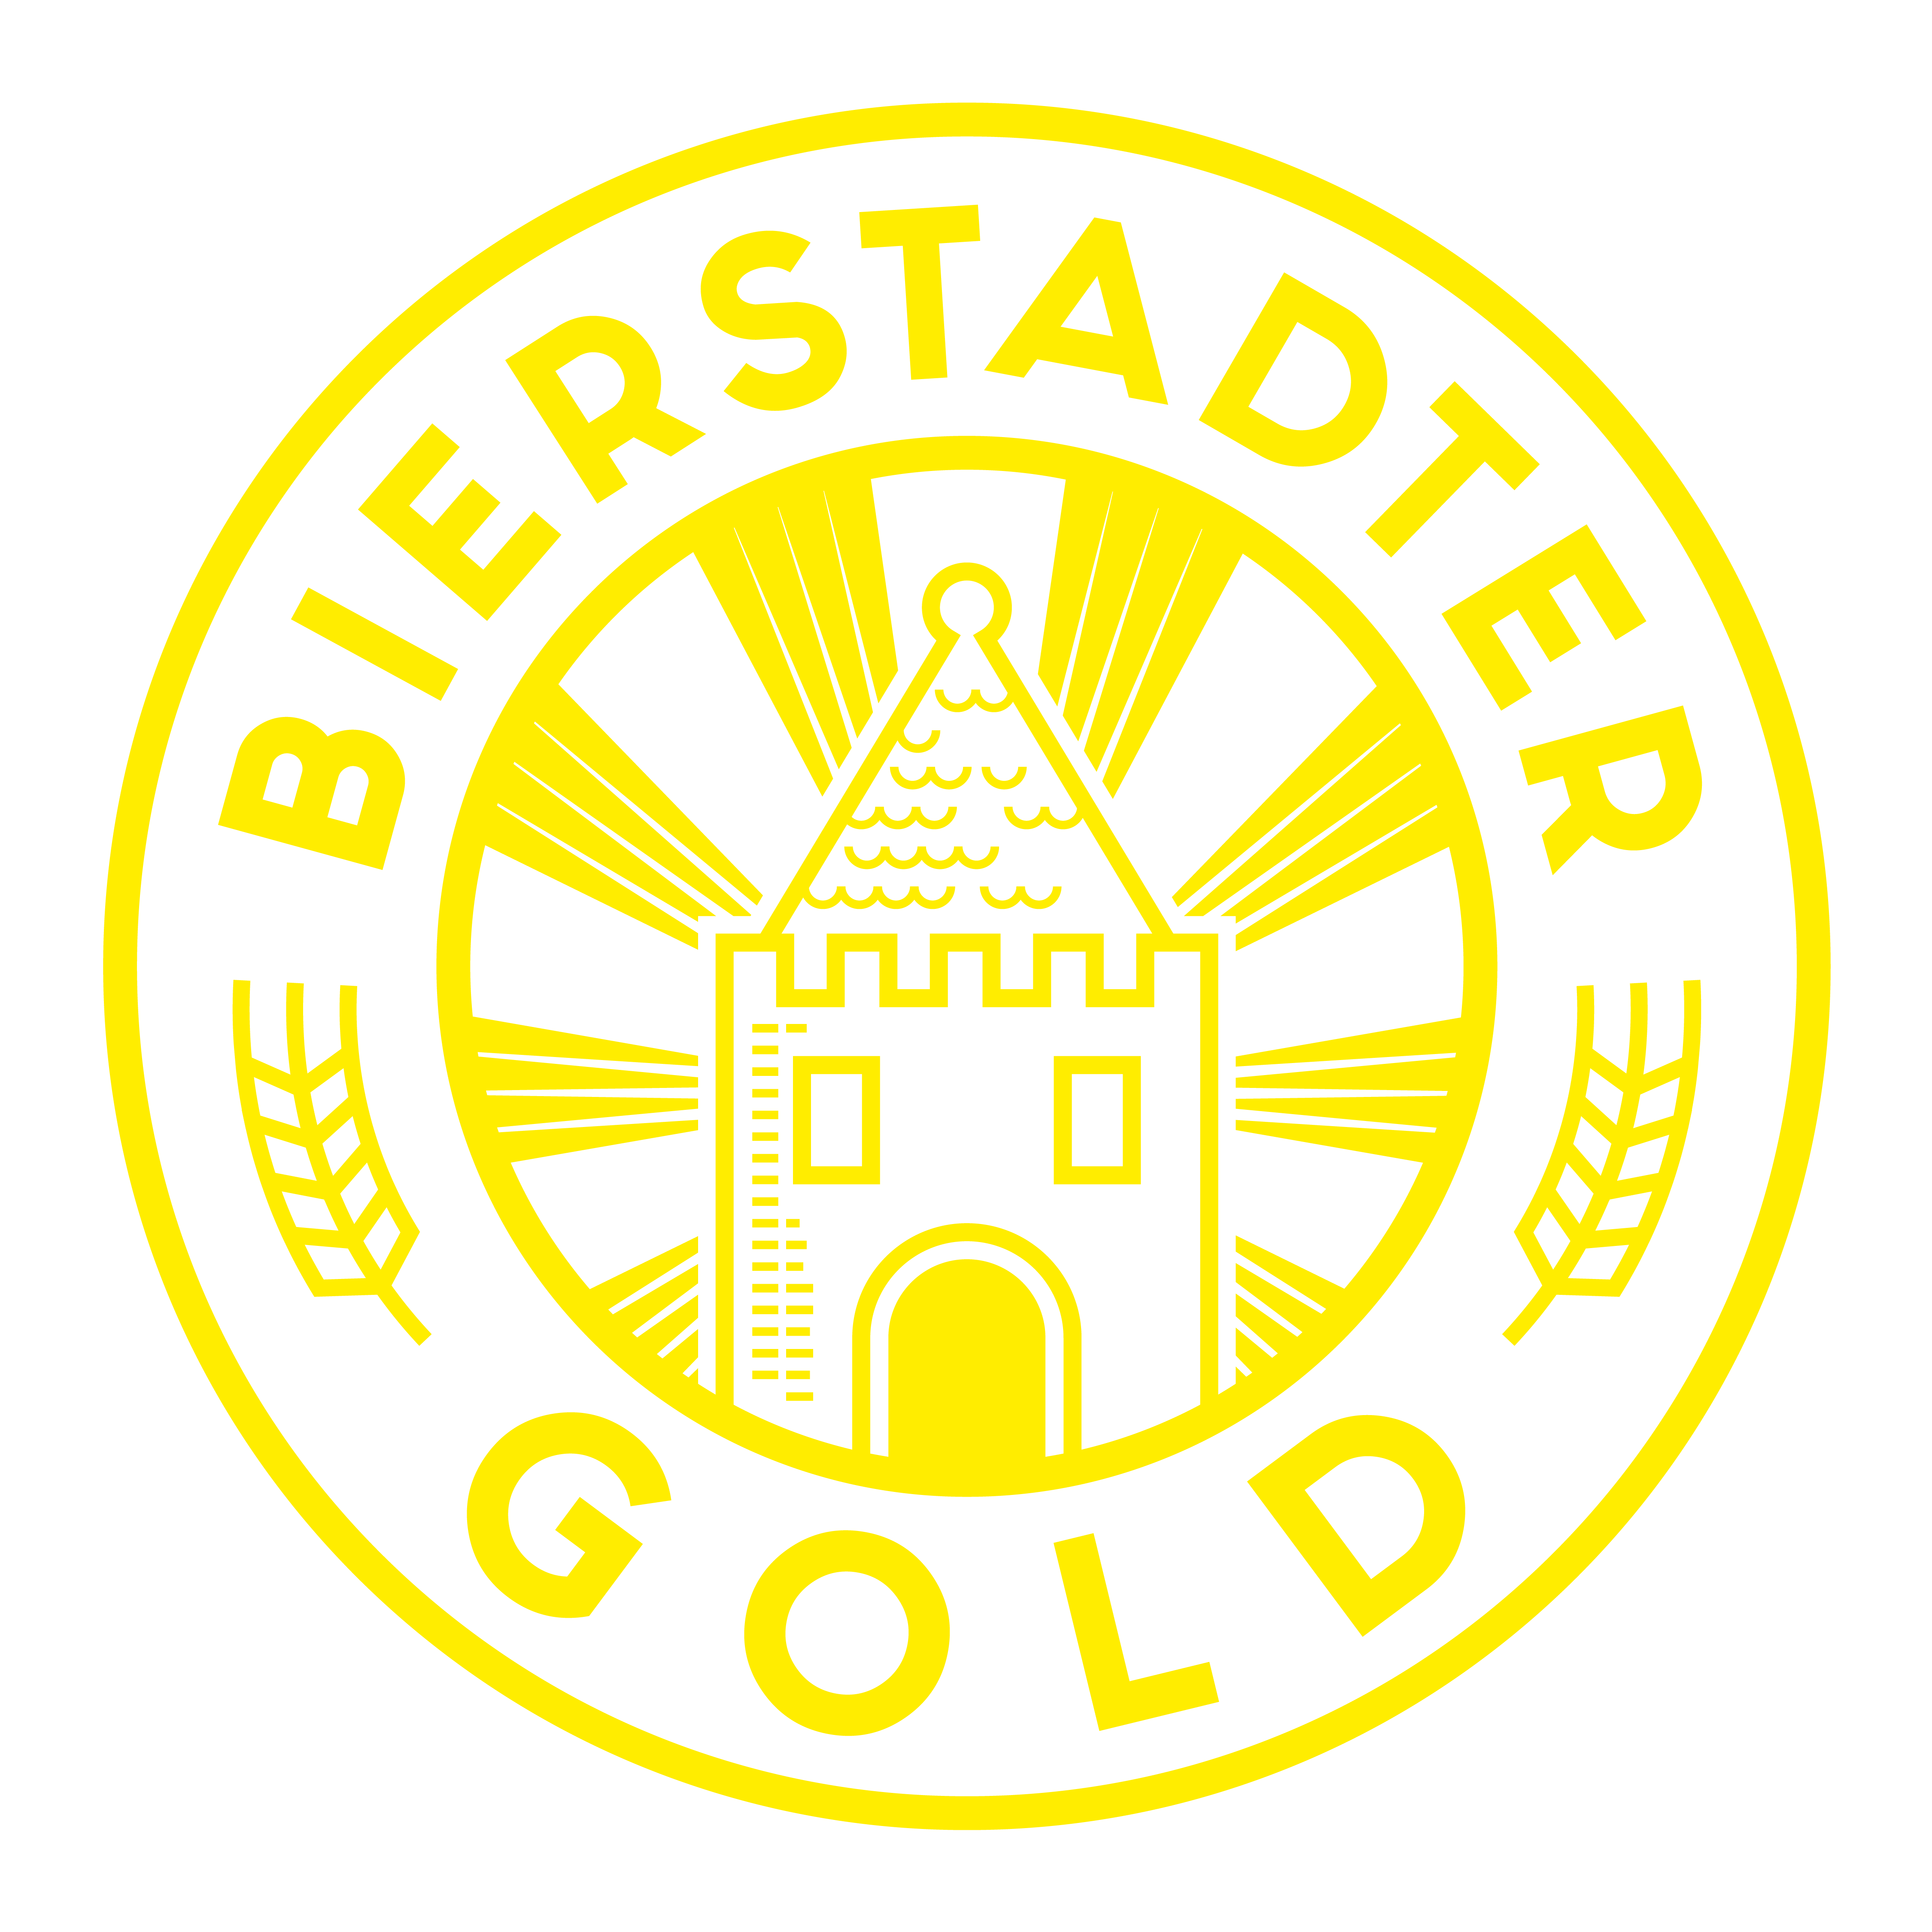 Bierstadter Gold